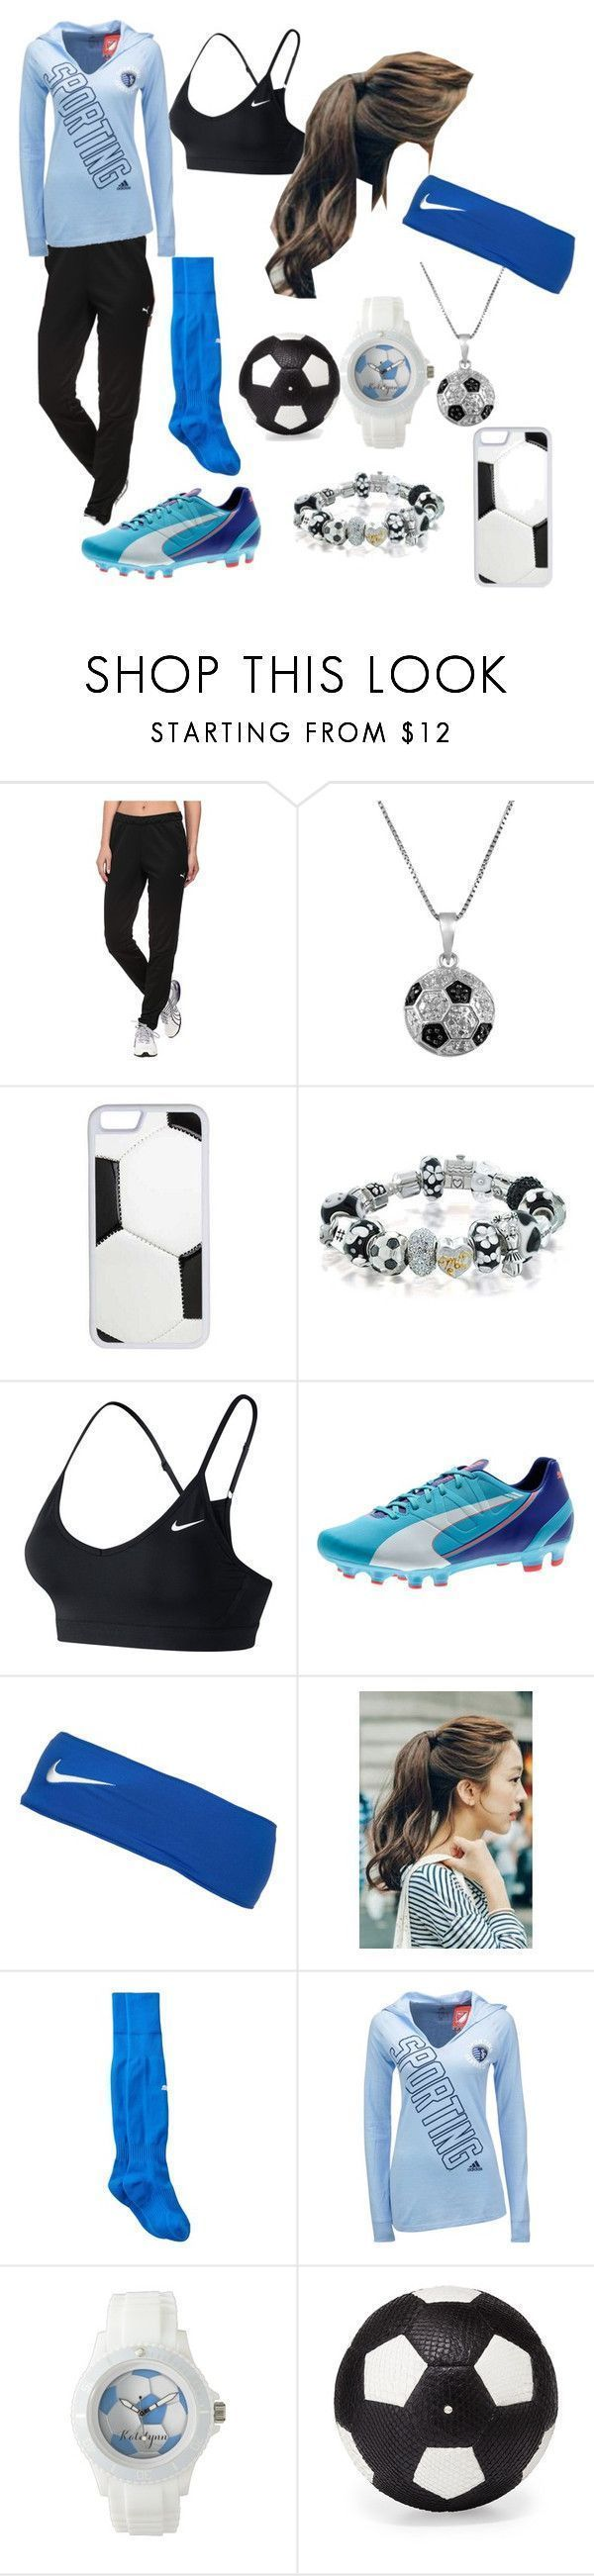 Soccer girl by lovebeingwacky ❤ liked on Polyvore featuring Puma, Jewel Exclusive, CellPowerCases, Bling Jewelry, NIKE, Marlangrouge, adidas and Elisabeth Weinstock ,Adidas Shoes Online,#adidas #shoes #soccerBoysandGirls